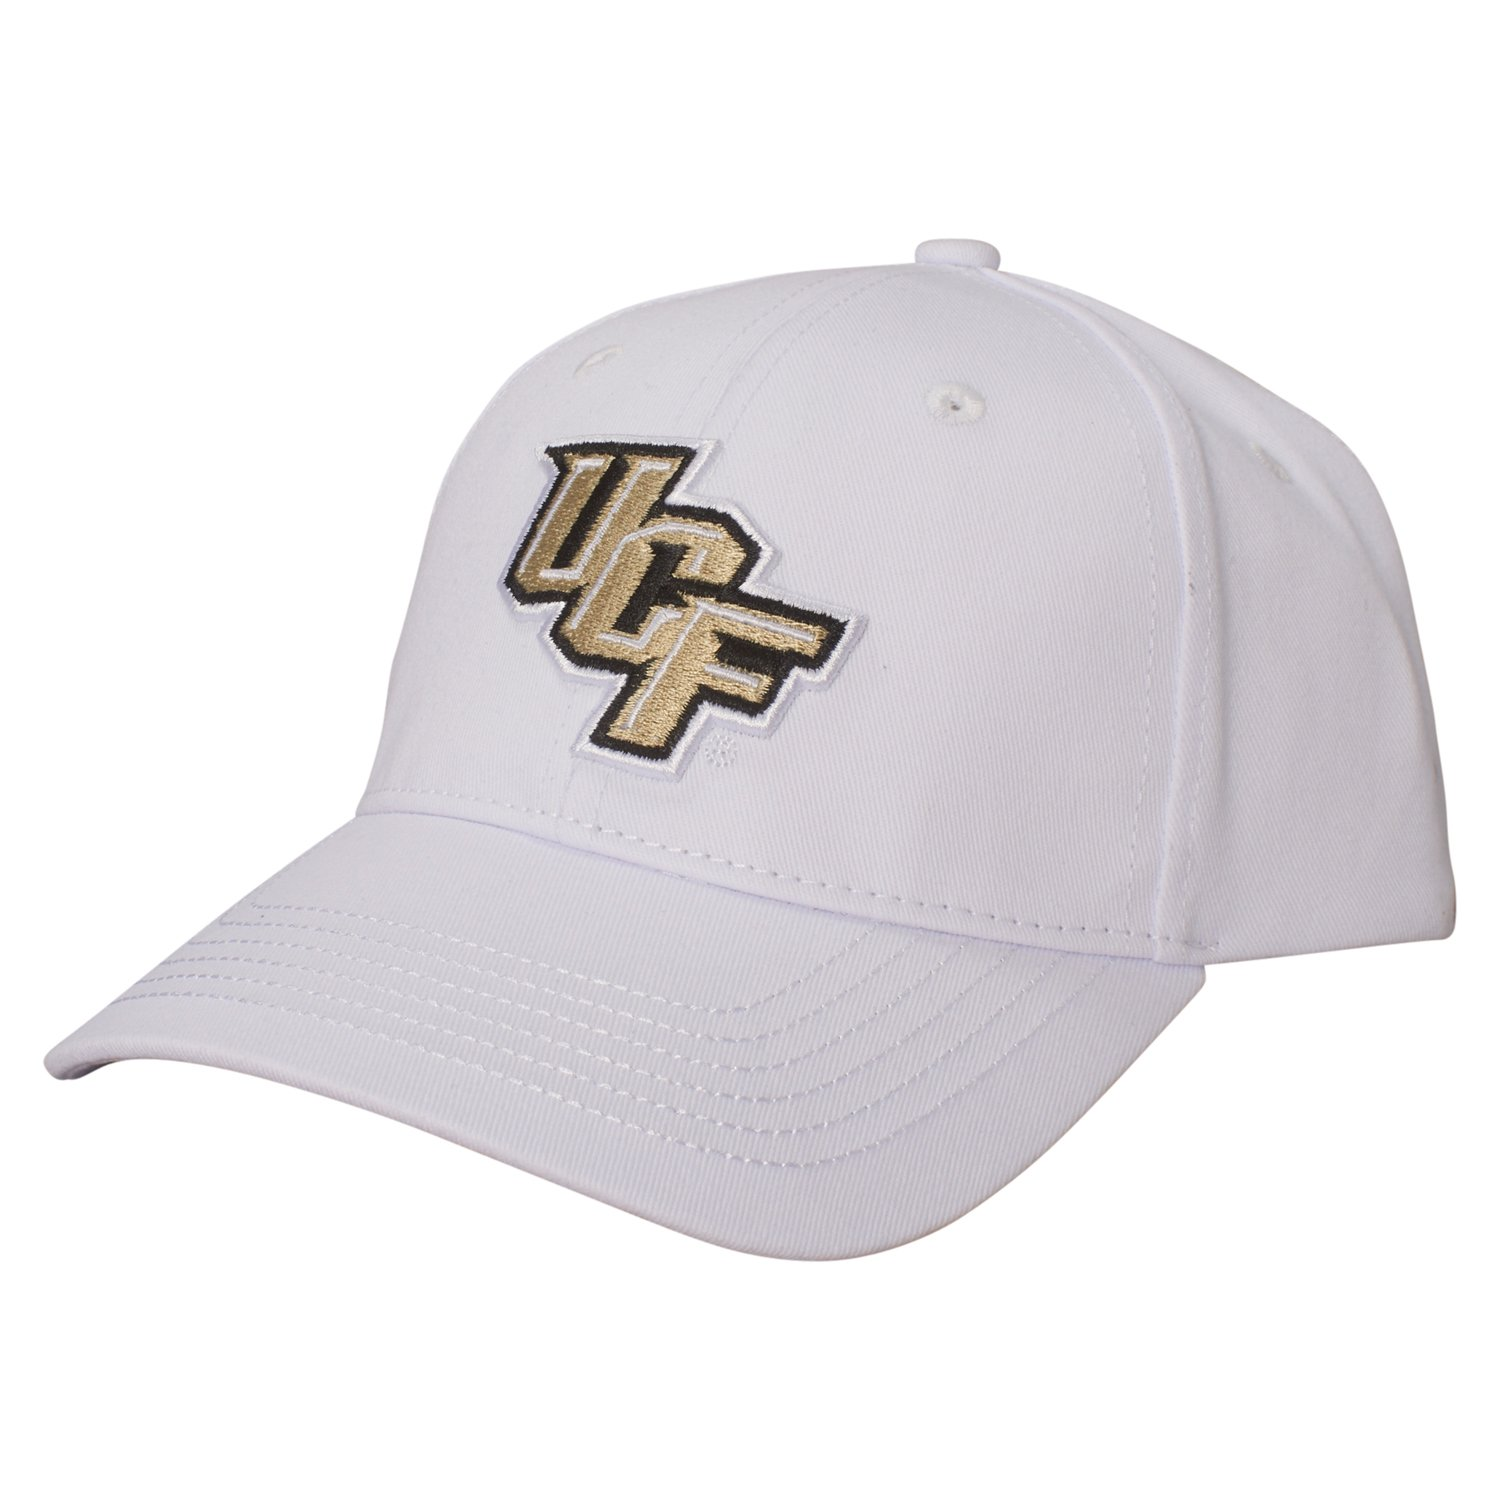 buy online 43da7 8a072 Amazon.com   Ouray Sportswear NCAA Baylor Bears Small Fit Epic Cap, Adjustable  Size, White   Sports   Outdoors